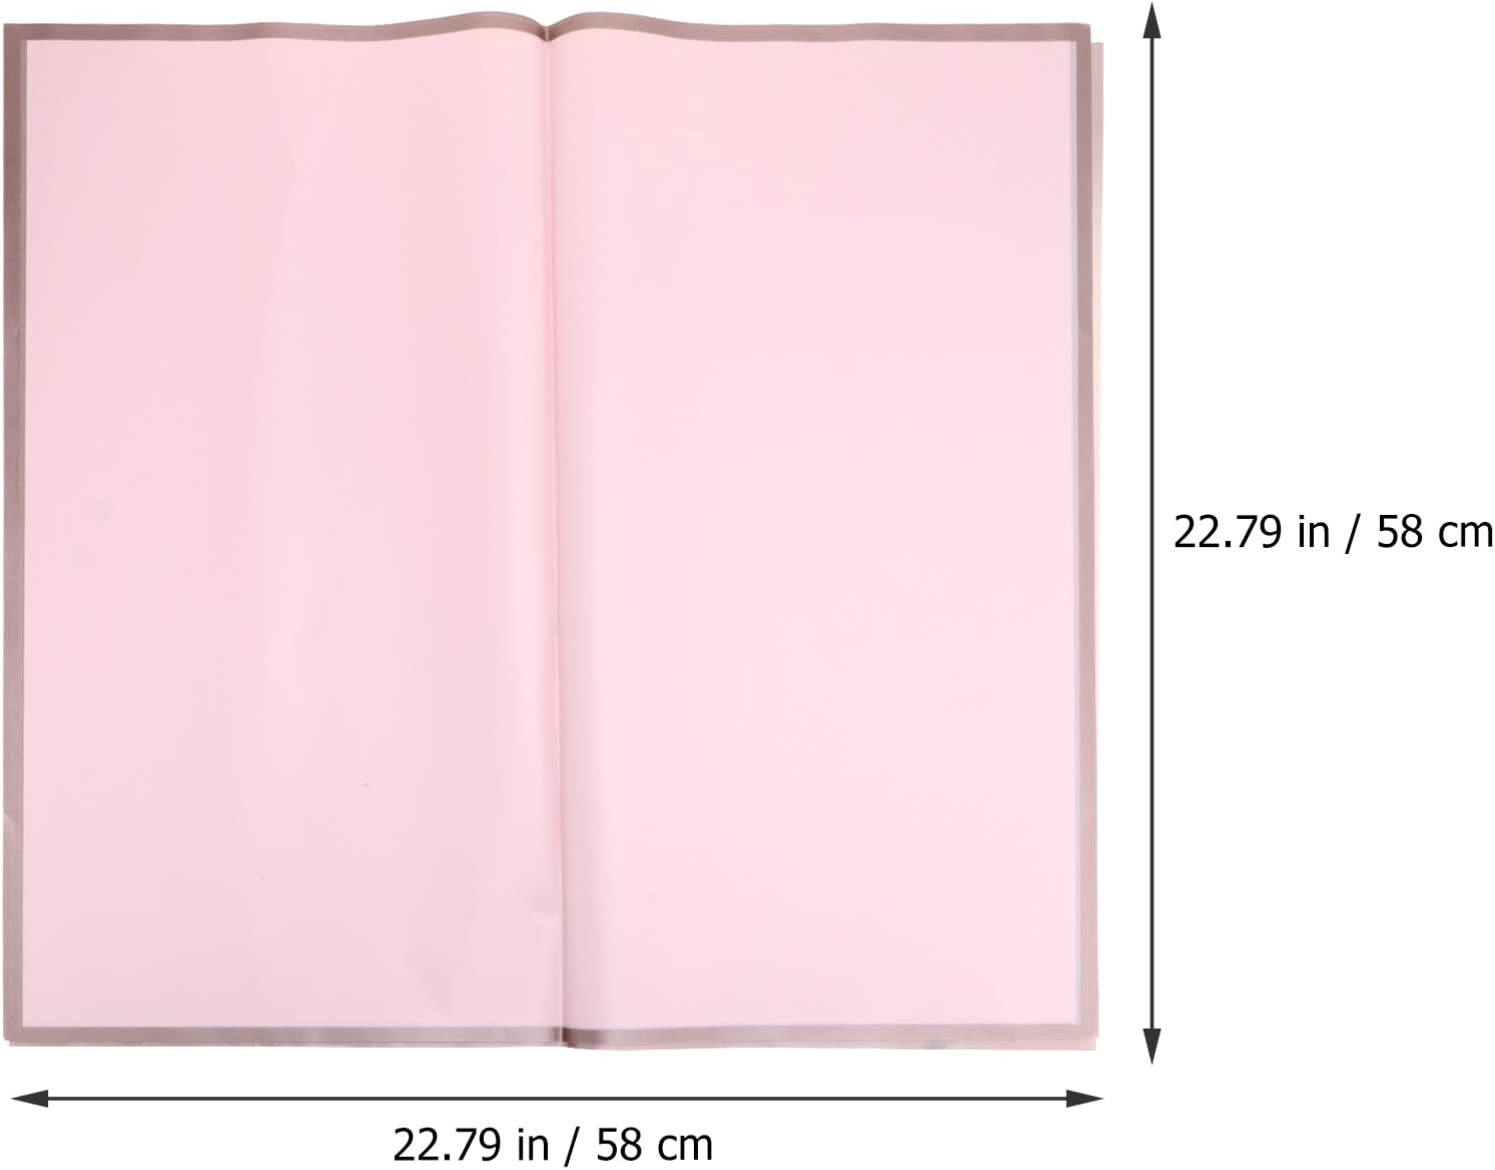 NUOBESTY 20pcs Valentines Day Gift Wrapping Paper Vintage Romantic Waterproof Present Flower Packaging Paper for DIY Craft New Year Wedding Birthday 58X58CM Pink